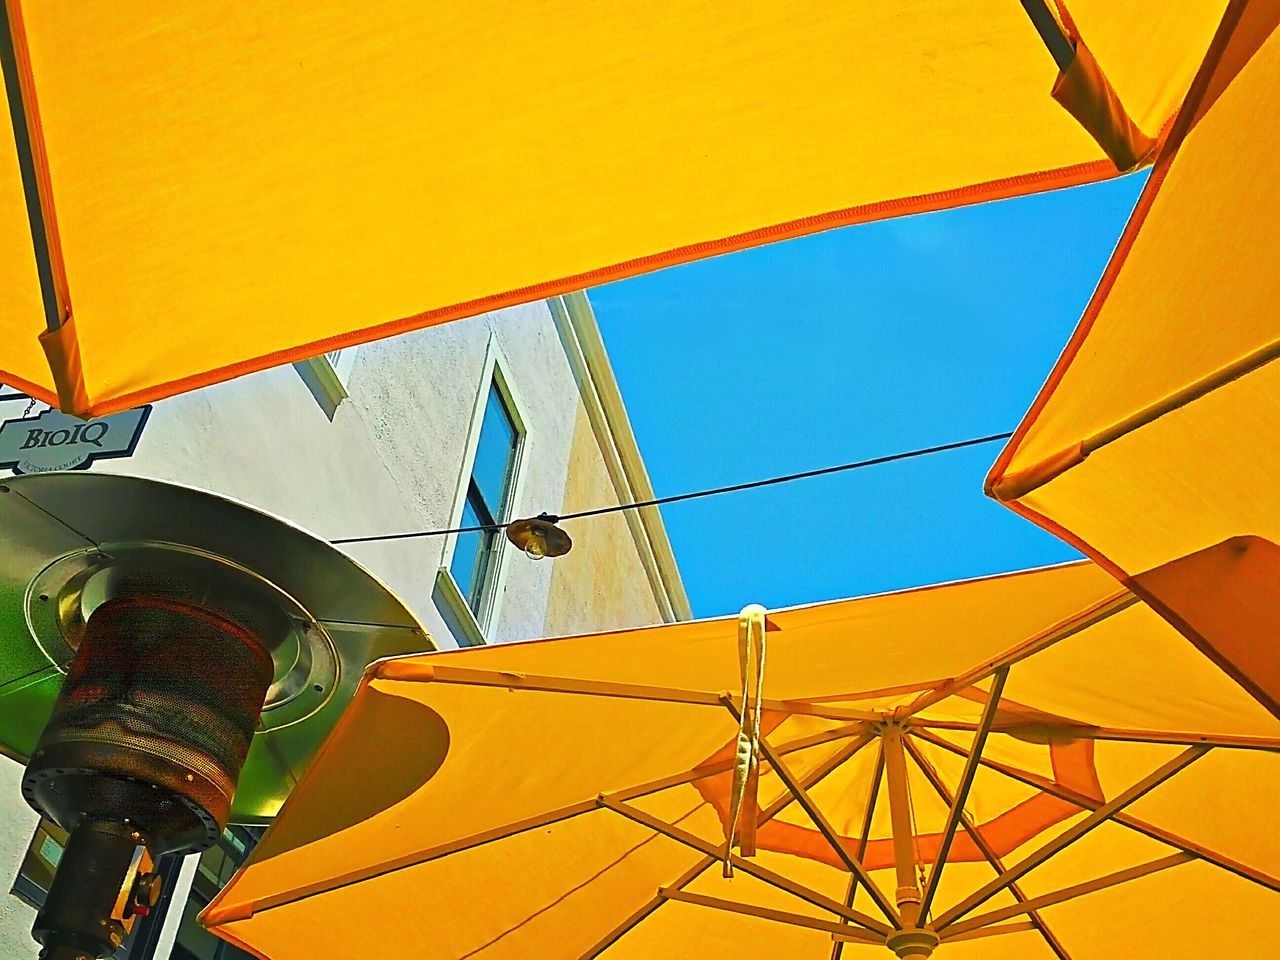 Yellow Multi Colored Low Angle View No People Sky Day Outdoors Architecture Abstract Building Exterior California Travel Destinations Architecture City Sunny Day Low Angle View Built Structure Beach Modern Illuminated Cloud - Sky Hanging Close-up